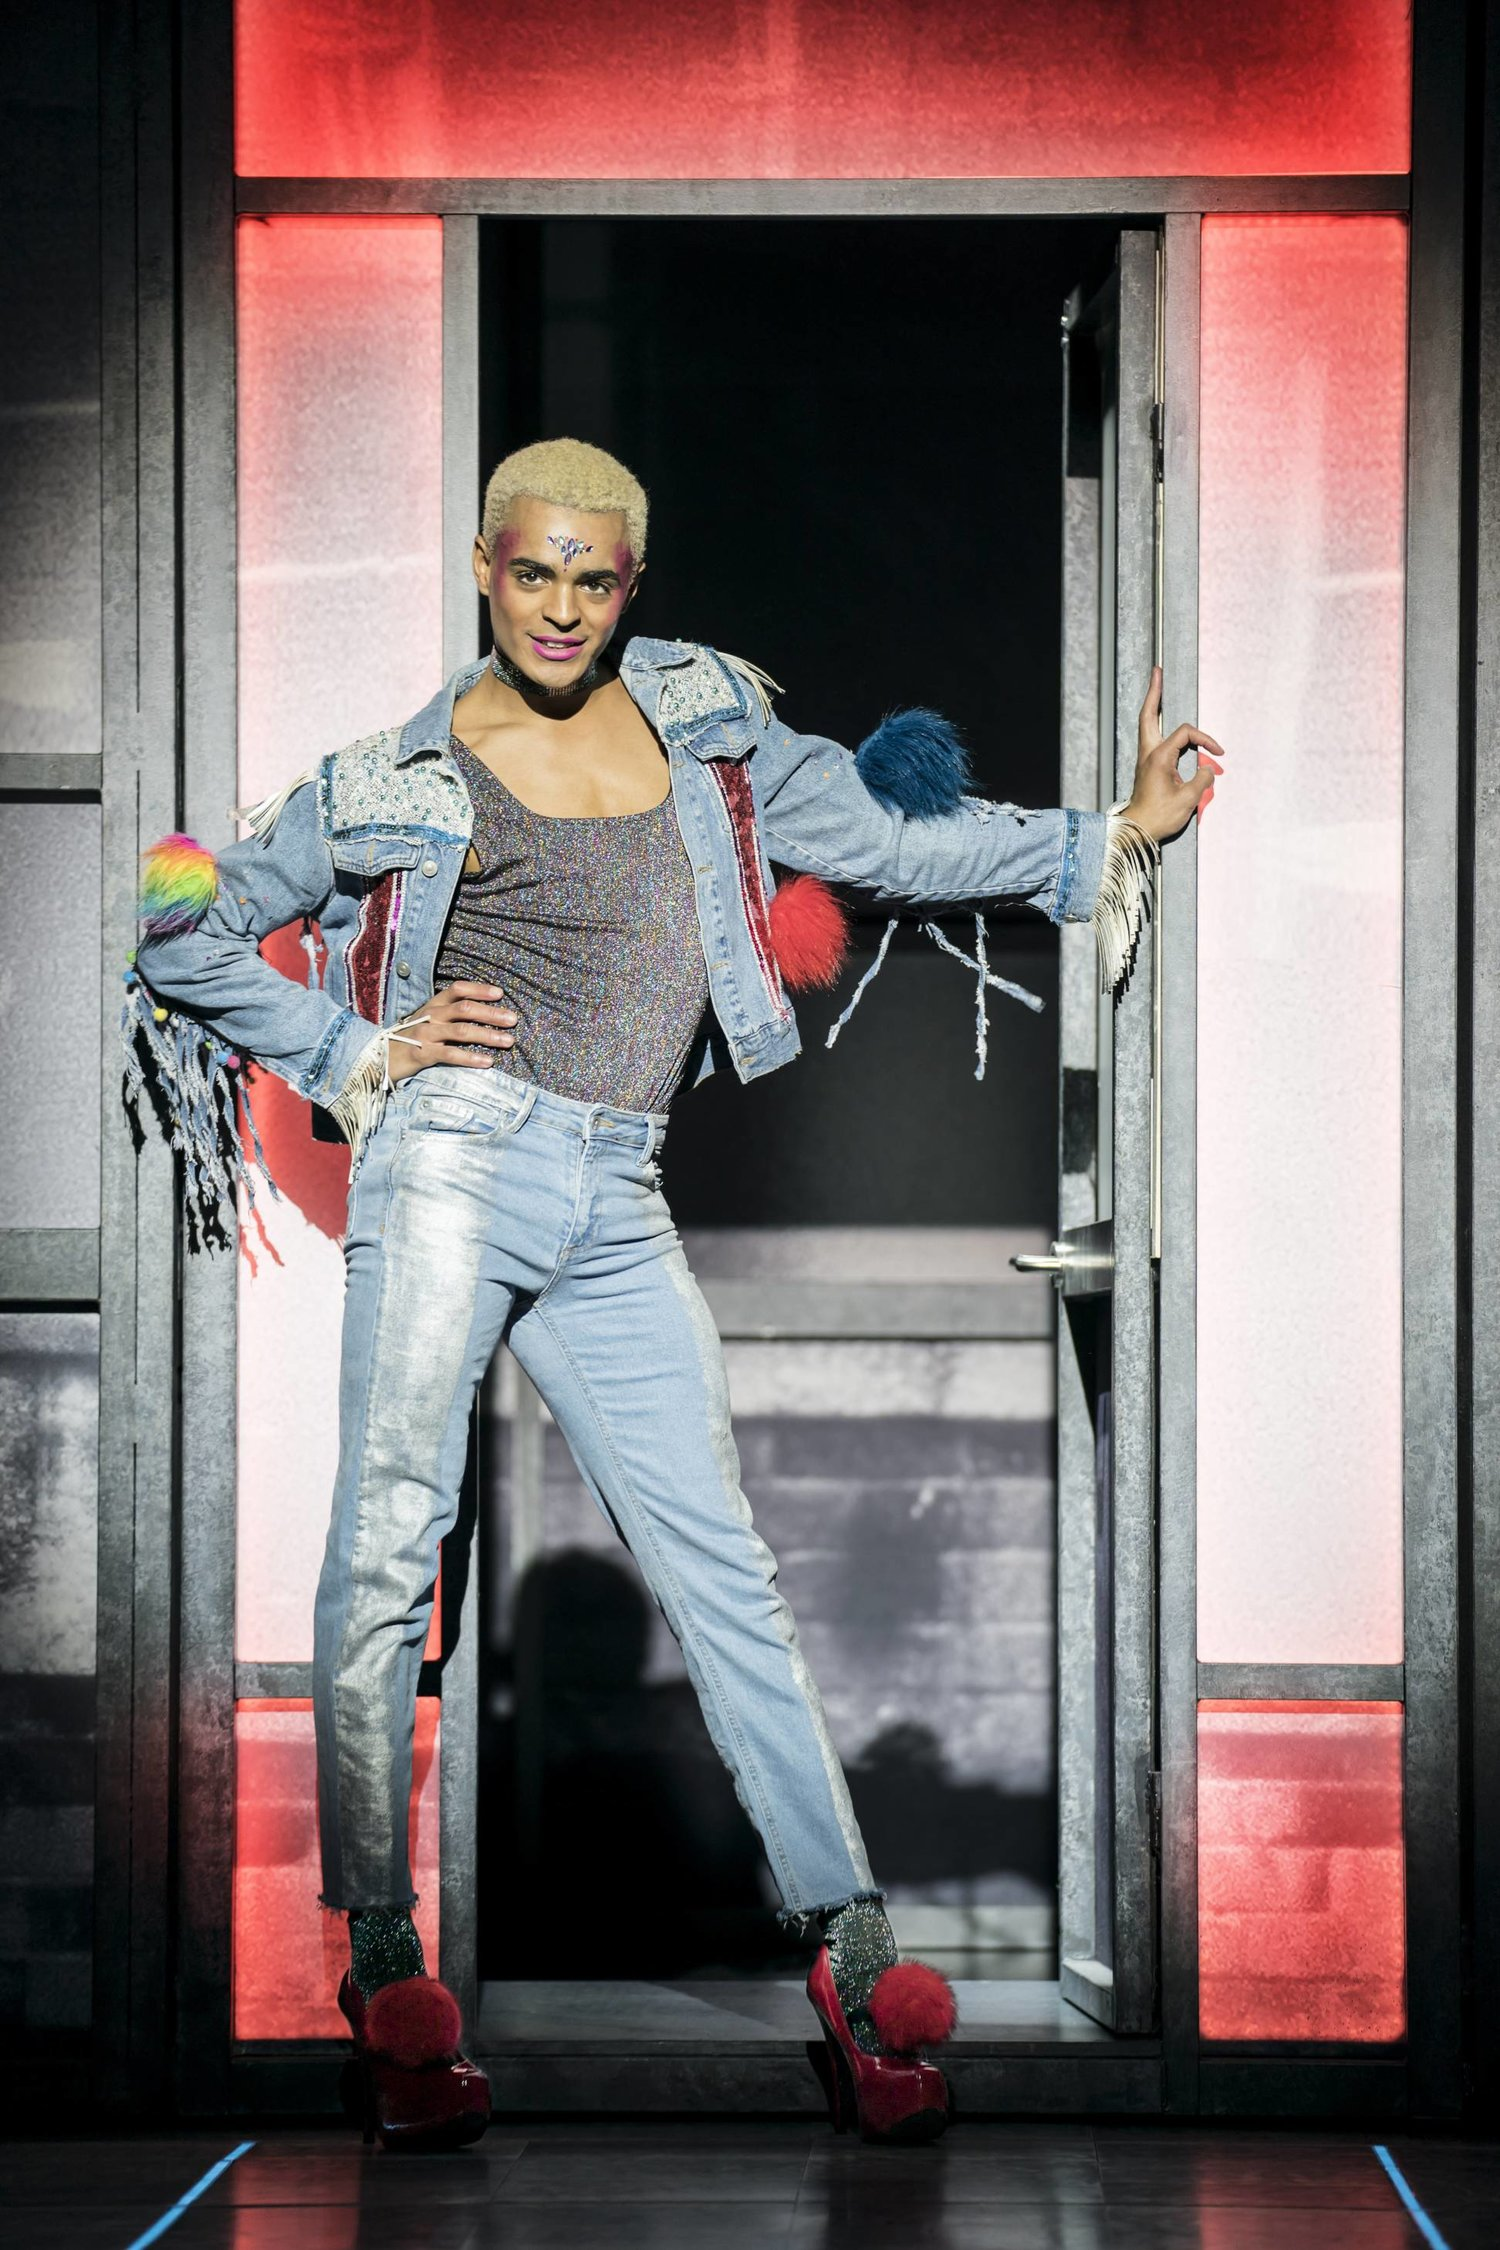 Layton Williams stars in  Everybody's Talking About Jamie  at The Apollo Theatre, London and will be taking the lead for the UK tour in 2020. The show comes to Wales Millennium Centre from Monday 18 May 2020 – Saturday 23 May 2020.